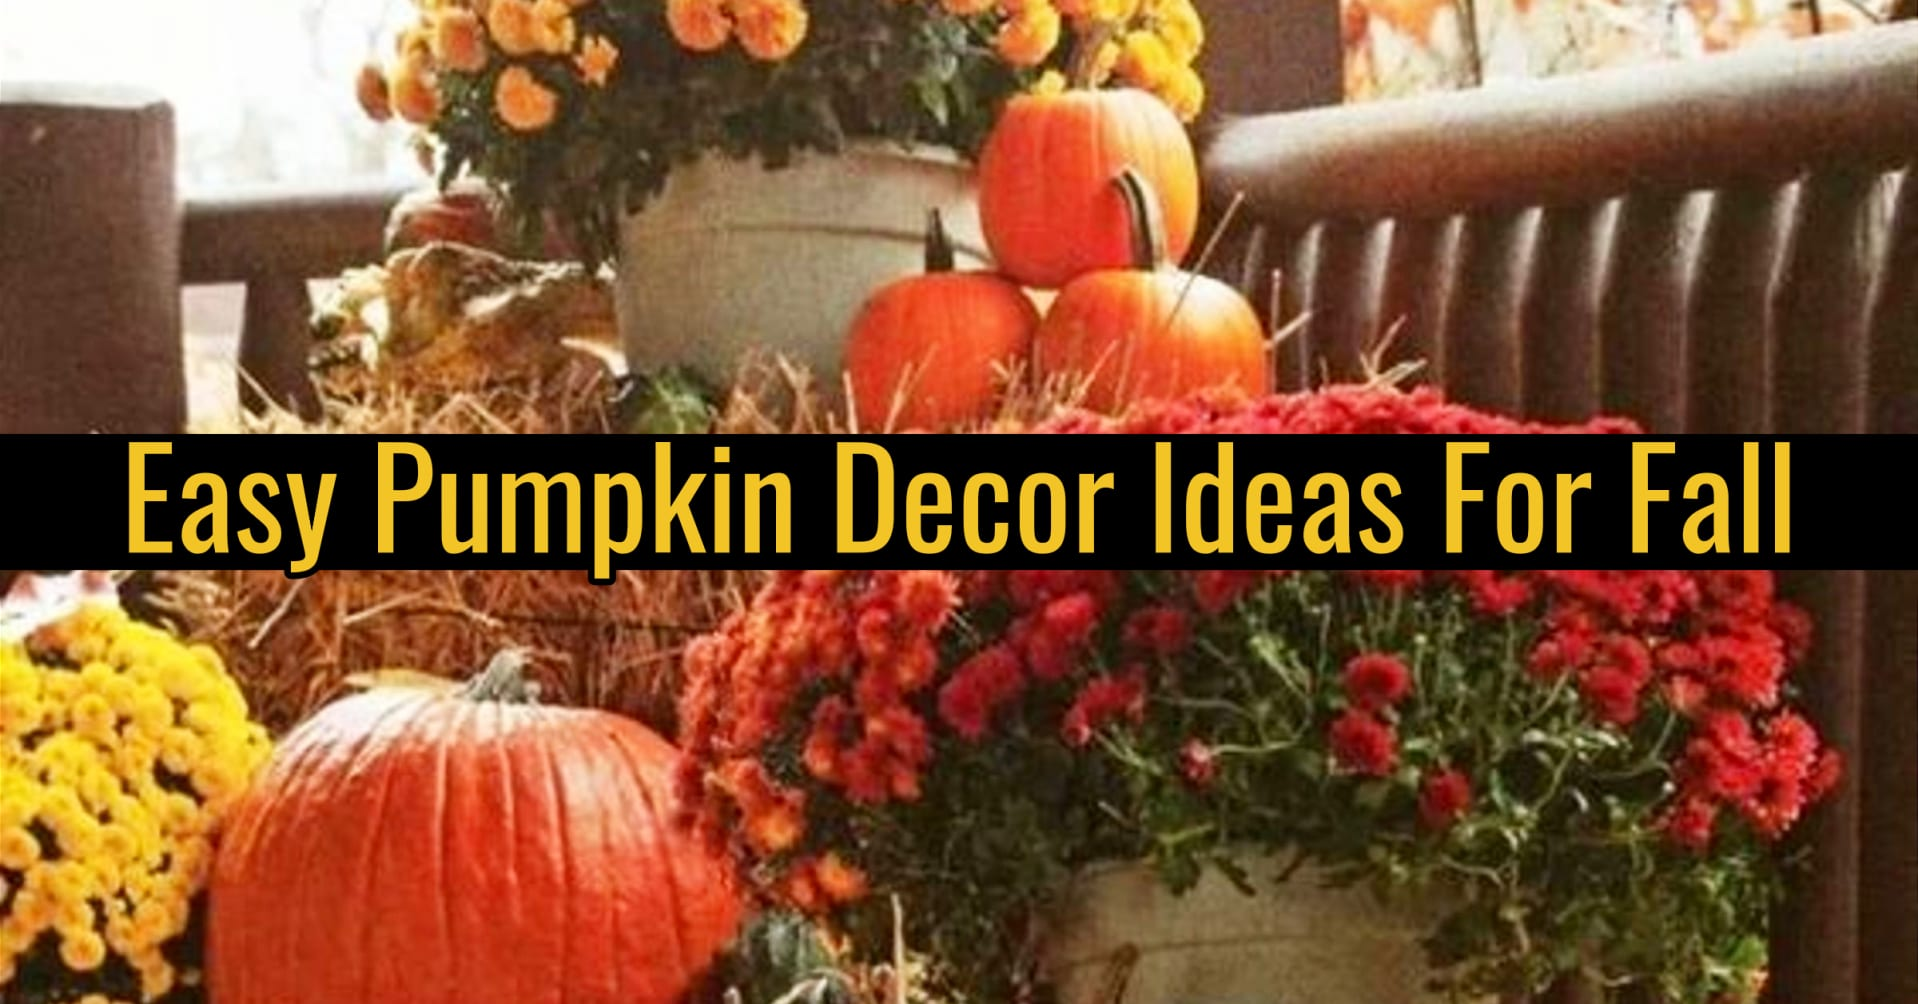 Fall Decorating with Pumpkins - 8 Creative DIY Pumpkin Decor Ideas You'll Love